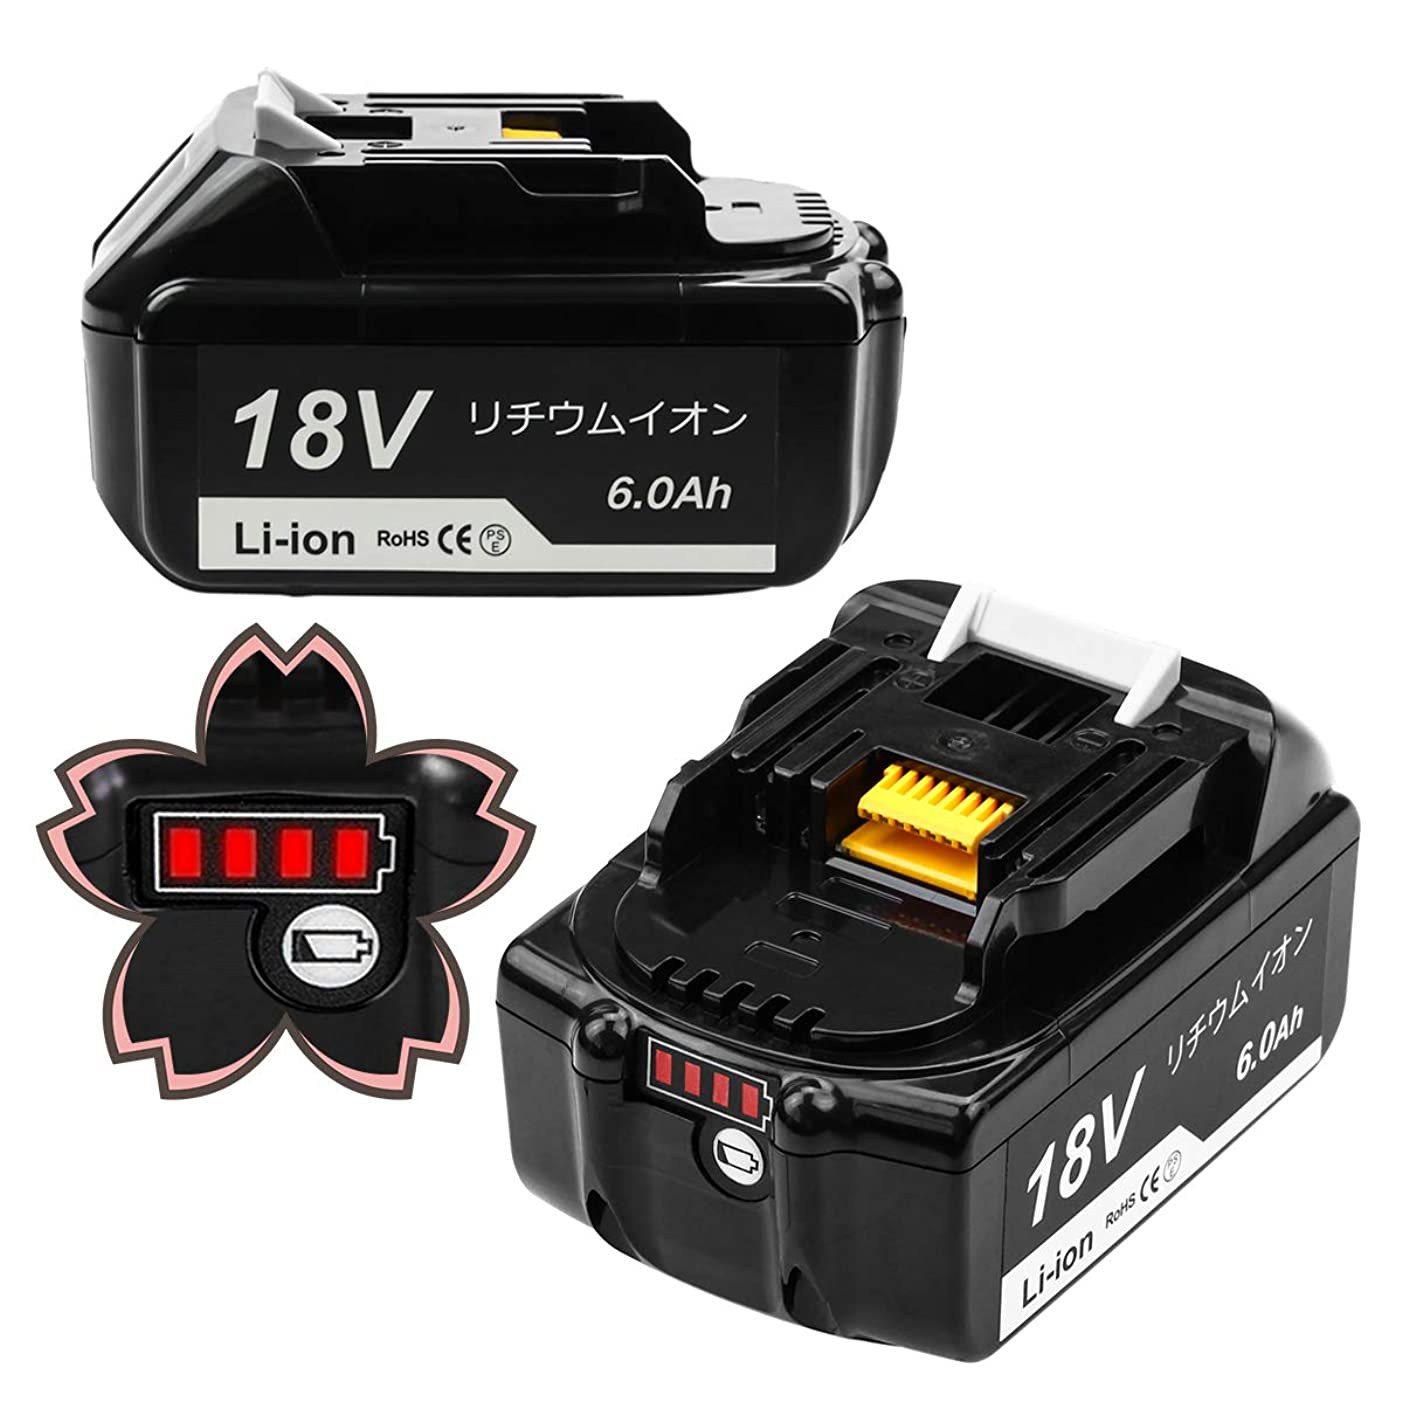 bl1860b マキタ 18V バッテリー マキタバッテリー マキタ18V 互換バッテリー 6000mAh 超高容量【2個セット】 4段残容量表示+ 自己故障診断 BL1830 BL1850 BL1860 BL1830b BL1850b BL1860b 18v マキタ バッテリー 対応 PSE認証取得済み 電動工具用バッテリー 安心の1年保証 無料交換可能 UPWAY